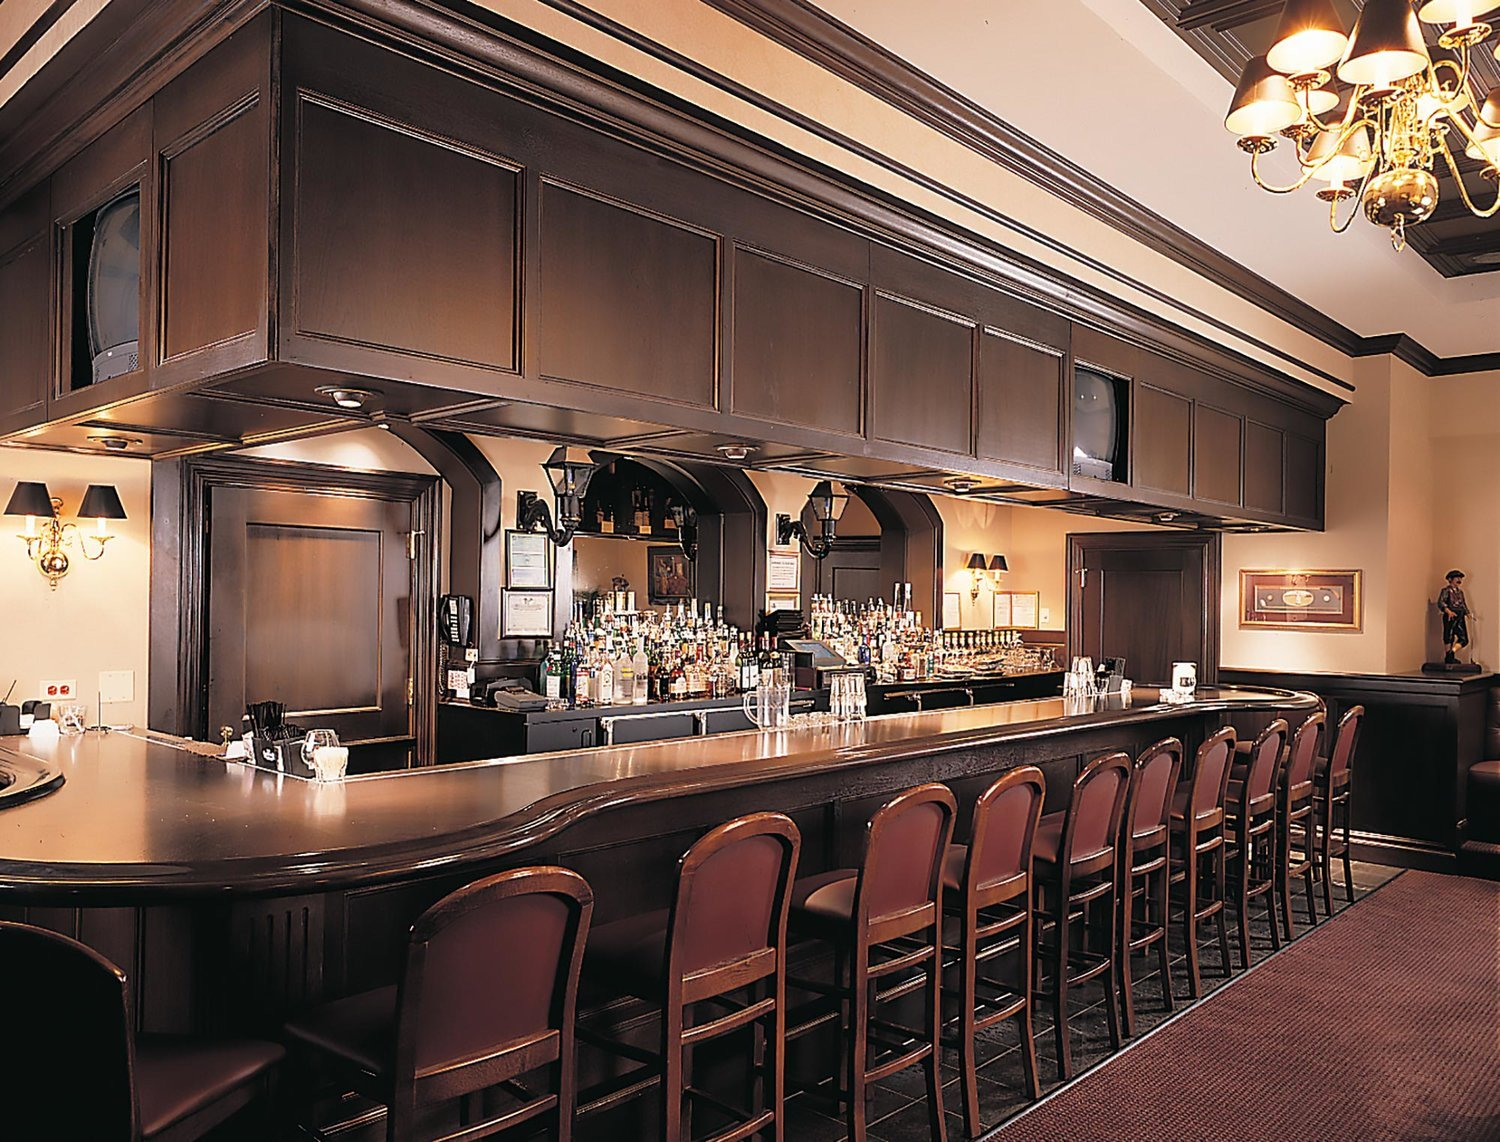 ruth chris Ruth's chris steak house is a chain of over 100 steakhouses across the united states, canada and mexico the restaurant is regarded as an upscale fine dining establishment, marking a gradual elevation in its status since its founding in the 1960s.